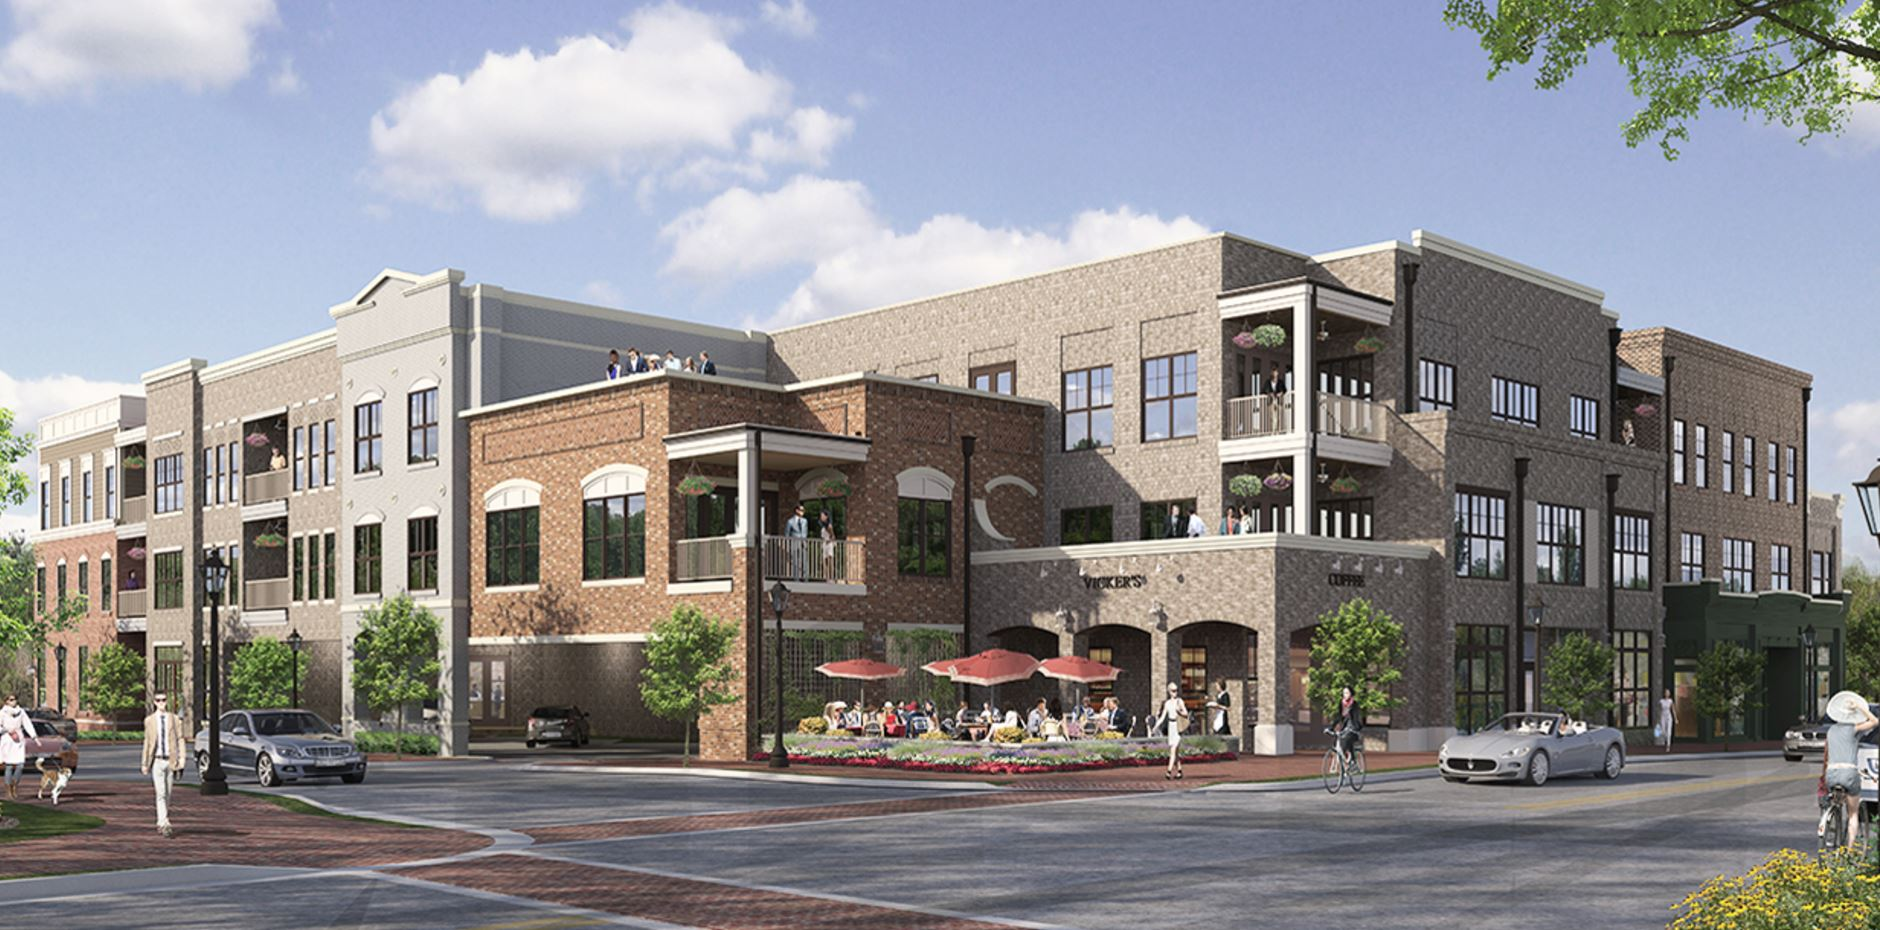 Three-story mixed-use development with residences above retail.